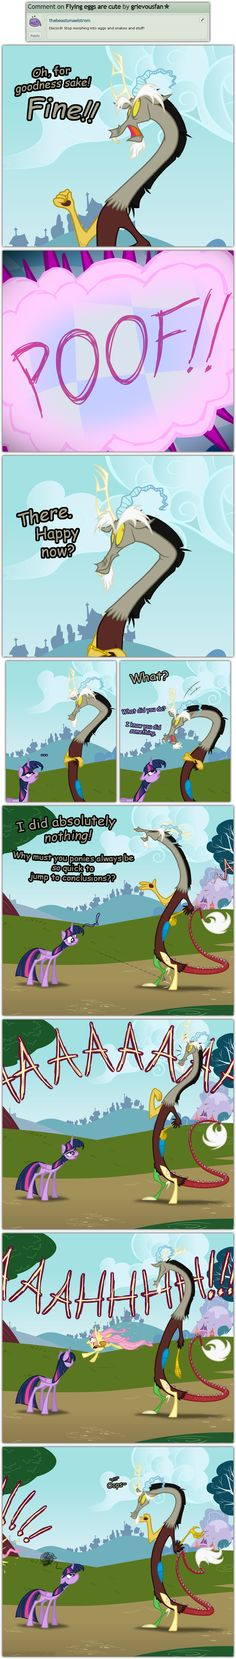 Straining Friendships: A How-To by grievousfan.deviantart.com on @deviantART